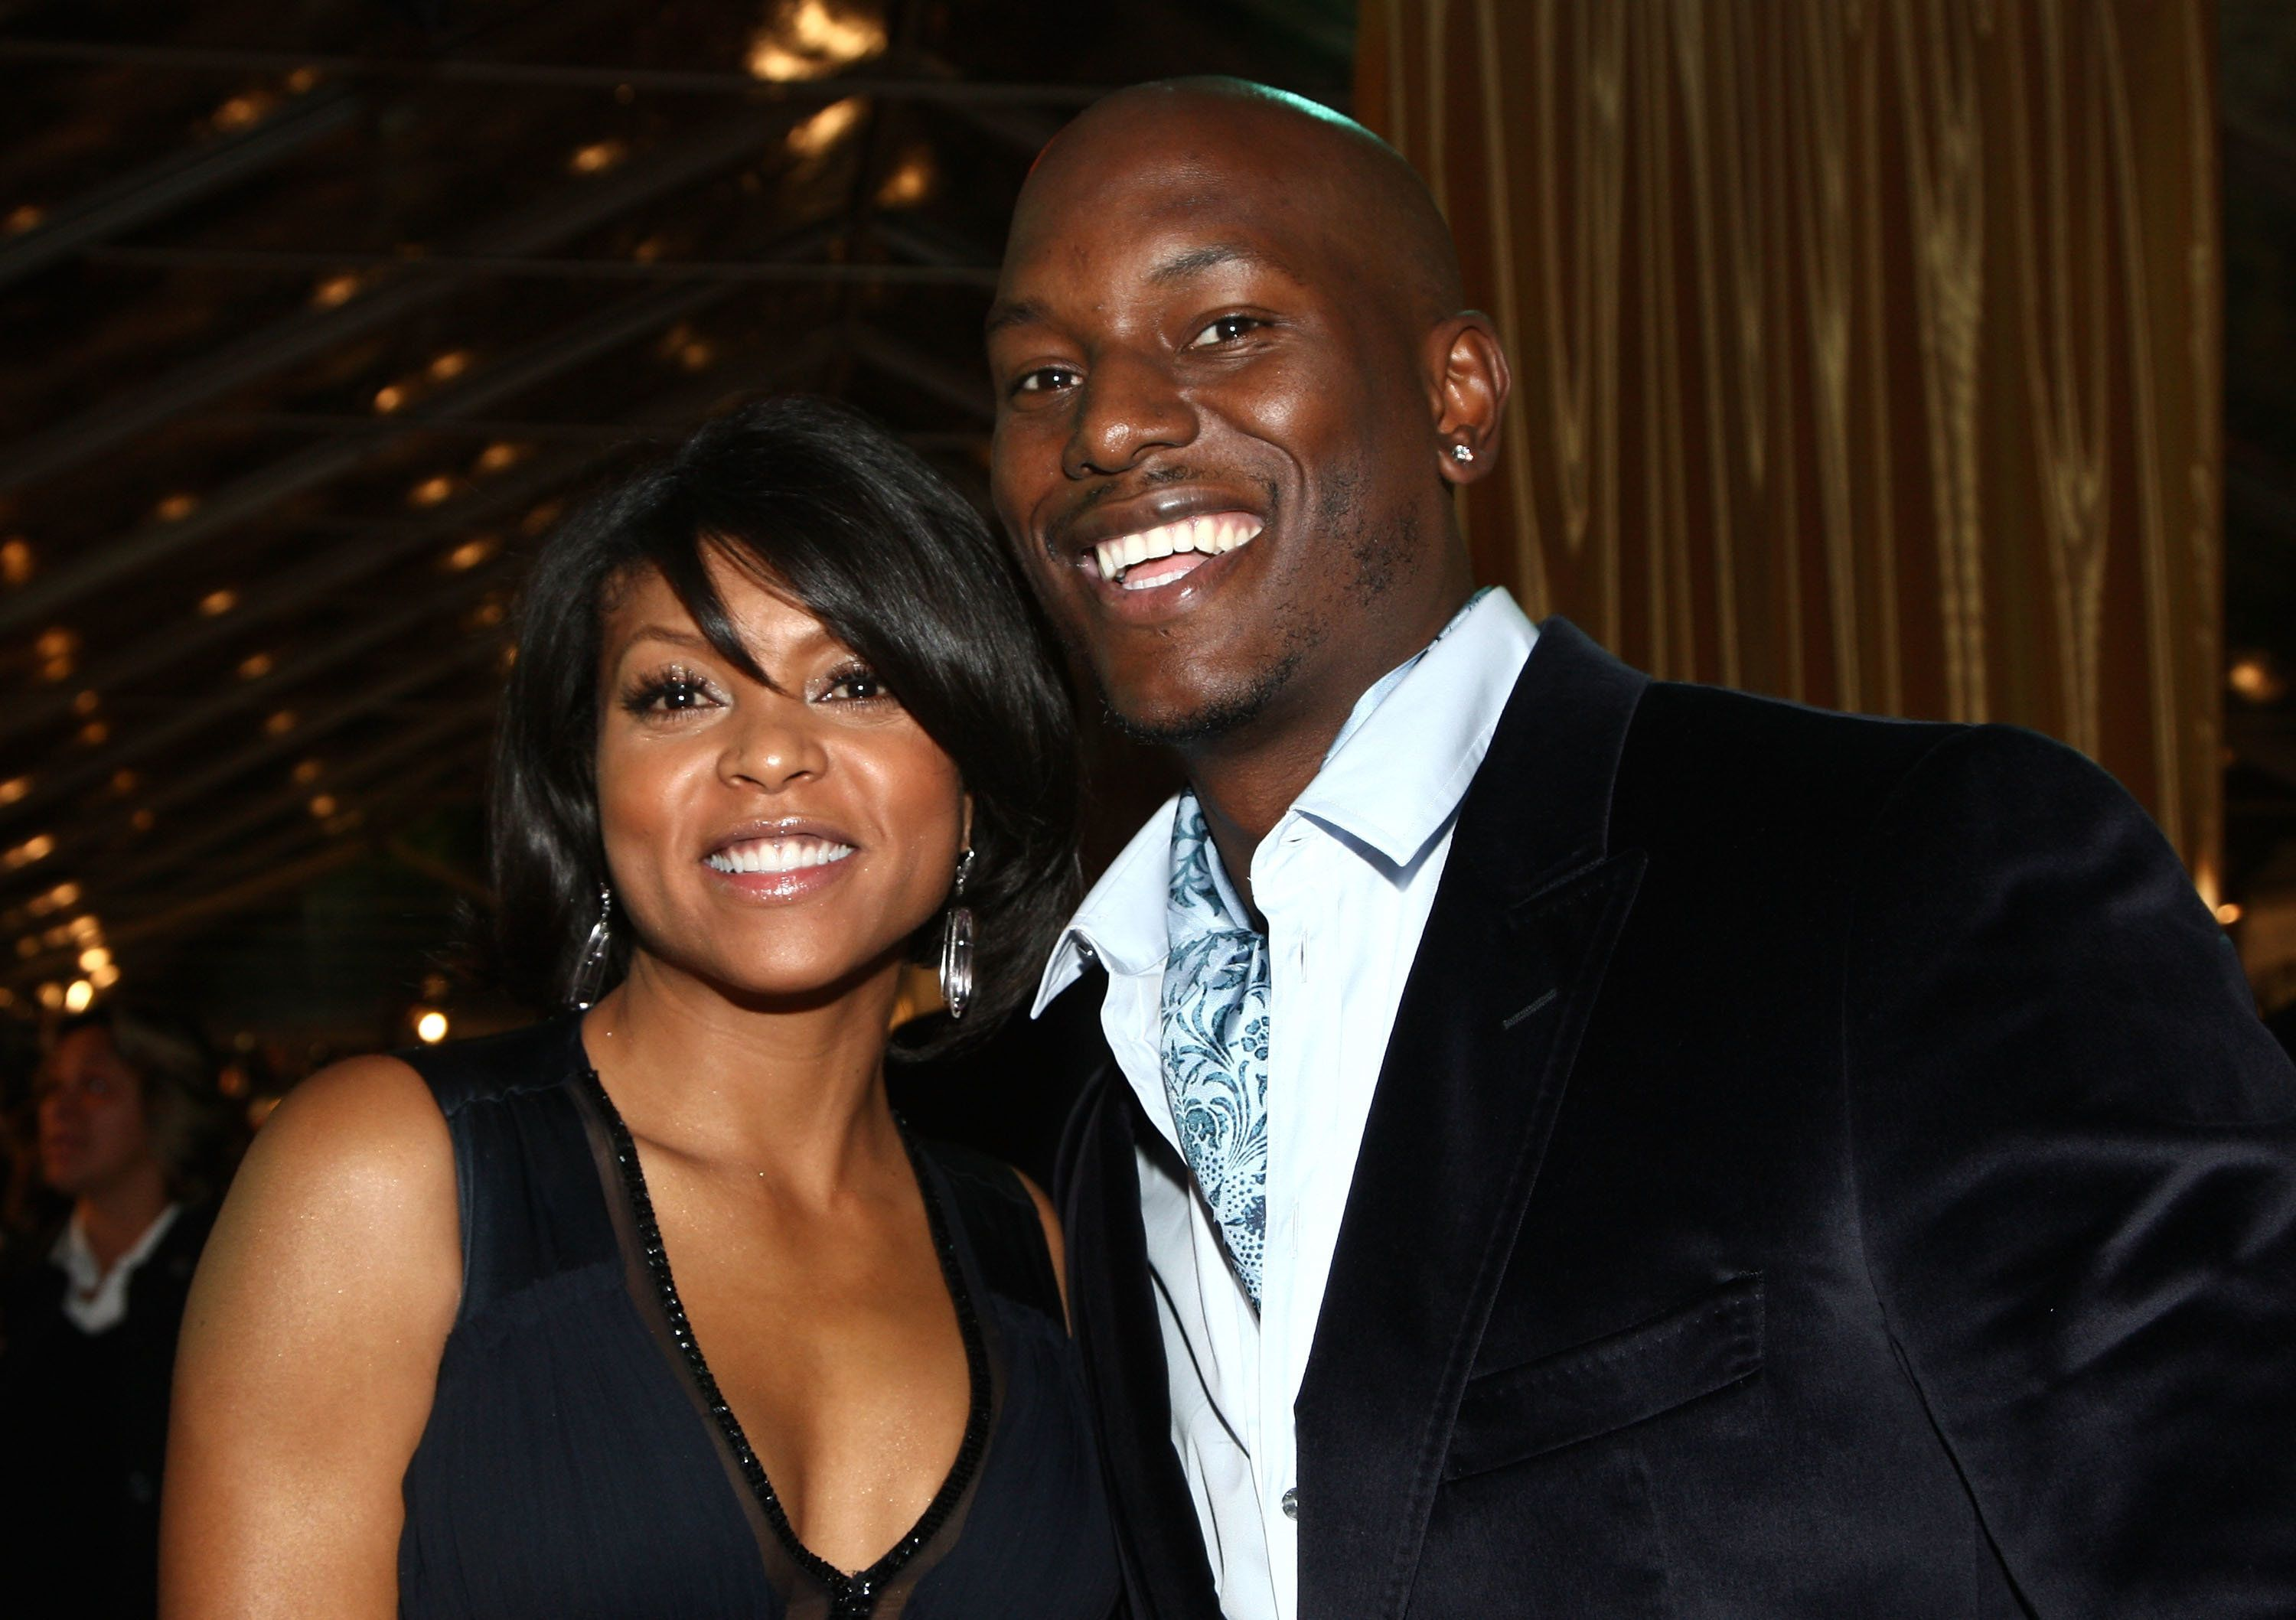 WESTWOOD, CA - DECEMBER 08:  Actress Taraji P. Henson and actor Tyrese Gibson arrive at the premiere of Paramount's 'The Curious Case Of Benjamin Button' held at Mann's Village Theatre on Decemeber 8, 2008 in Westwood, California.  (Photo by Alberto E. Rodriguez/Getty Images)